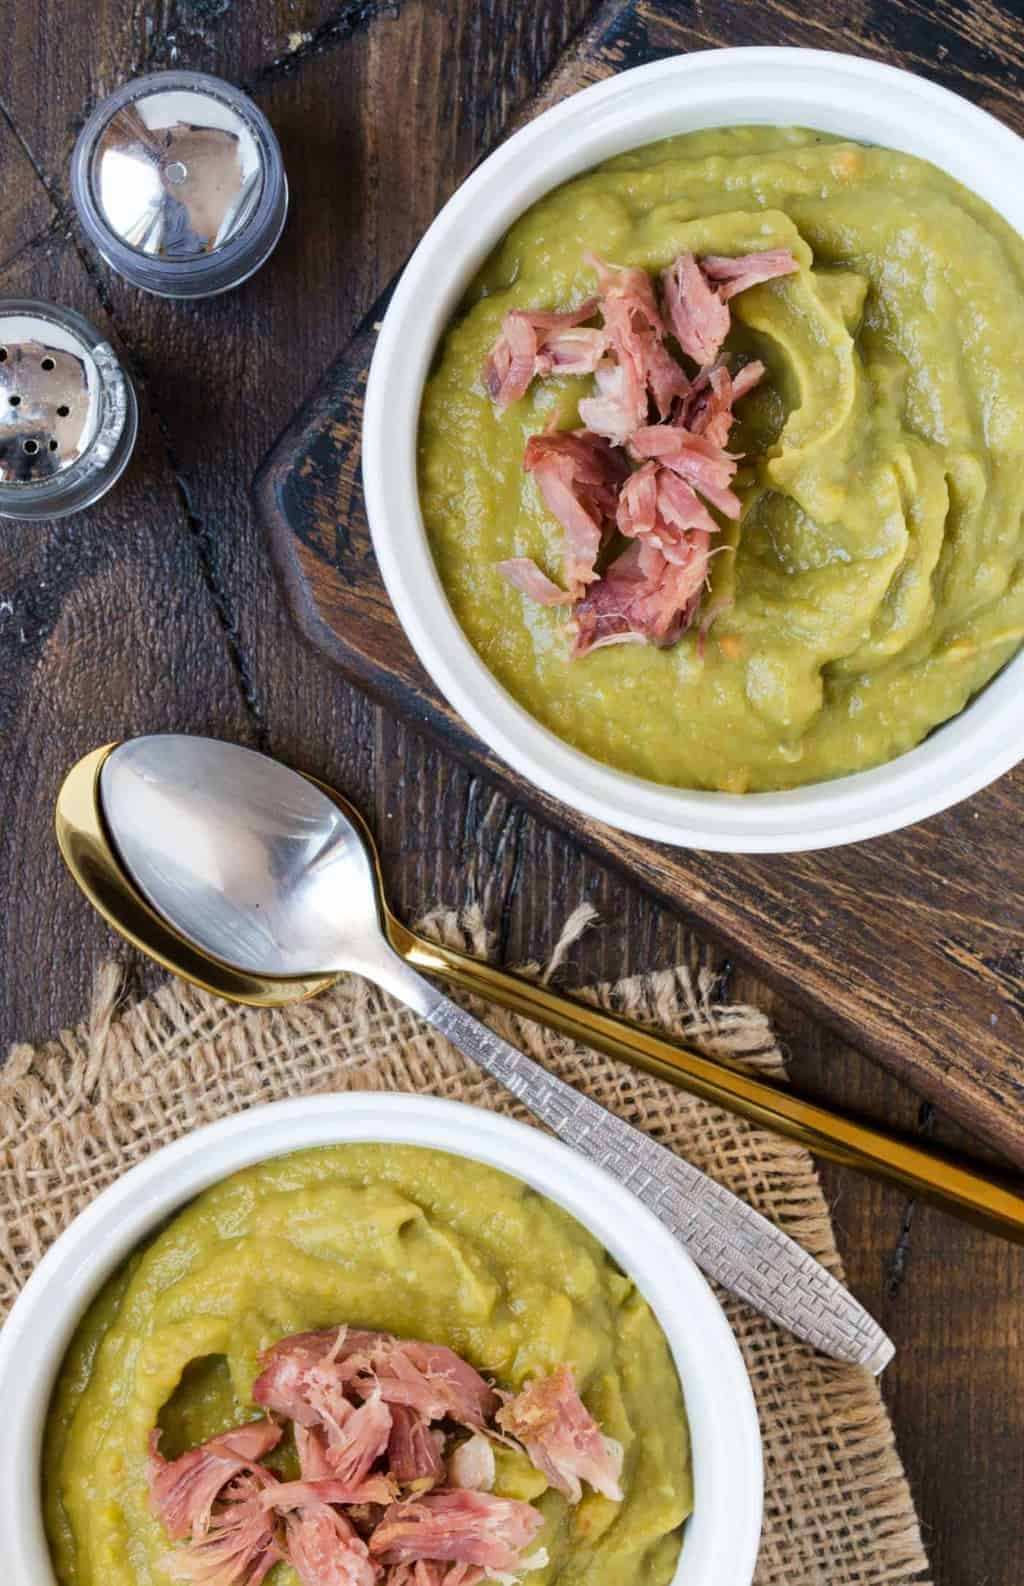 Two bowls of Slow Cooker Split Pea Soup with Ham and two spoons. Soup is topped with shredded ham.